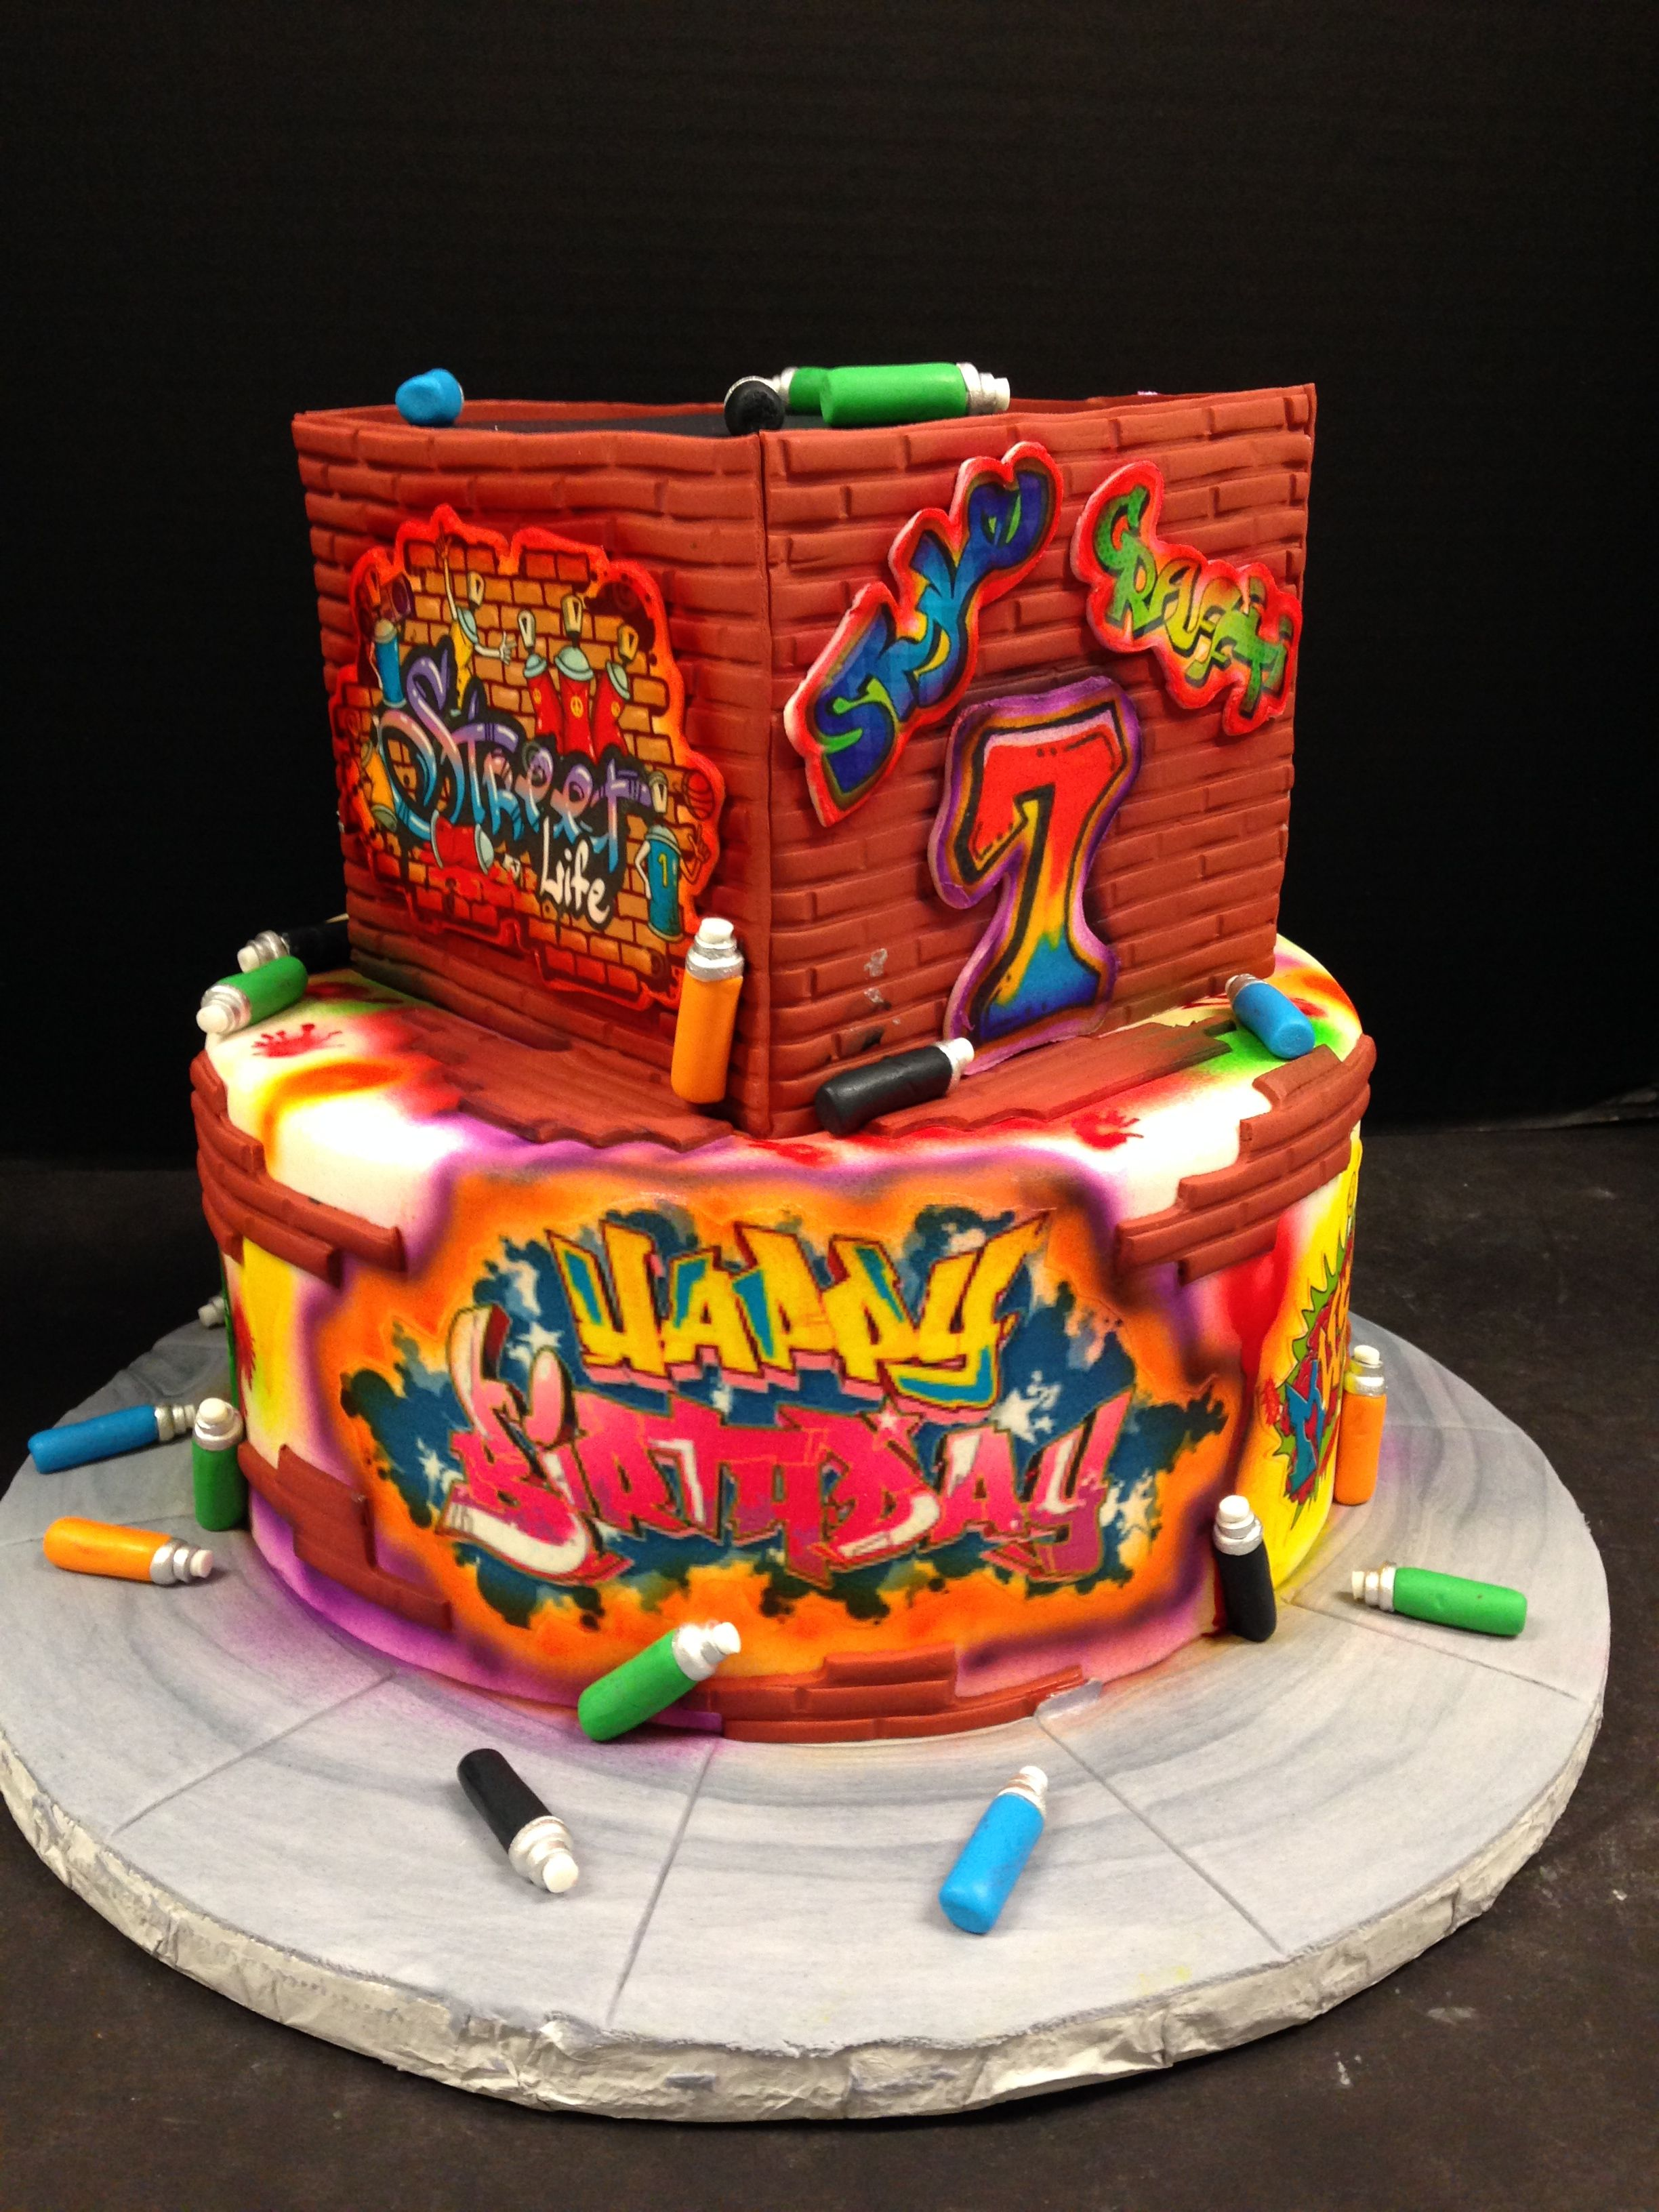 Pleasant Graffiti And Glow Themed 2 Tier Cake Perfect For Your Next Glow Personalised Birthday Cards Petedlily Jamesorg